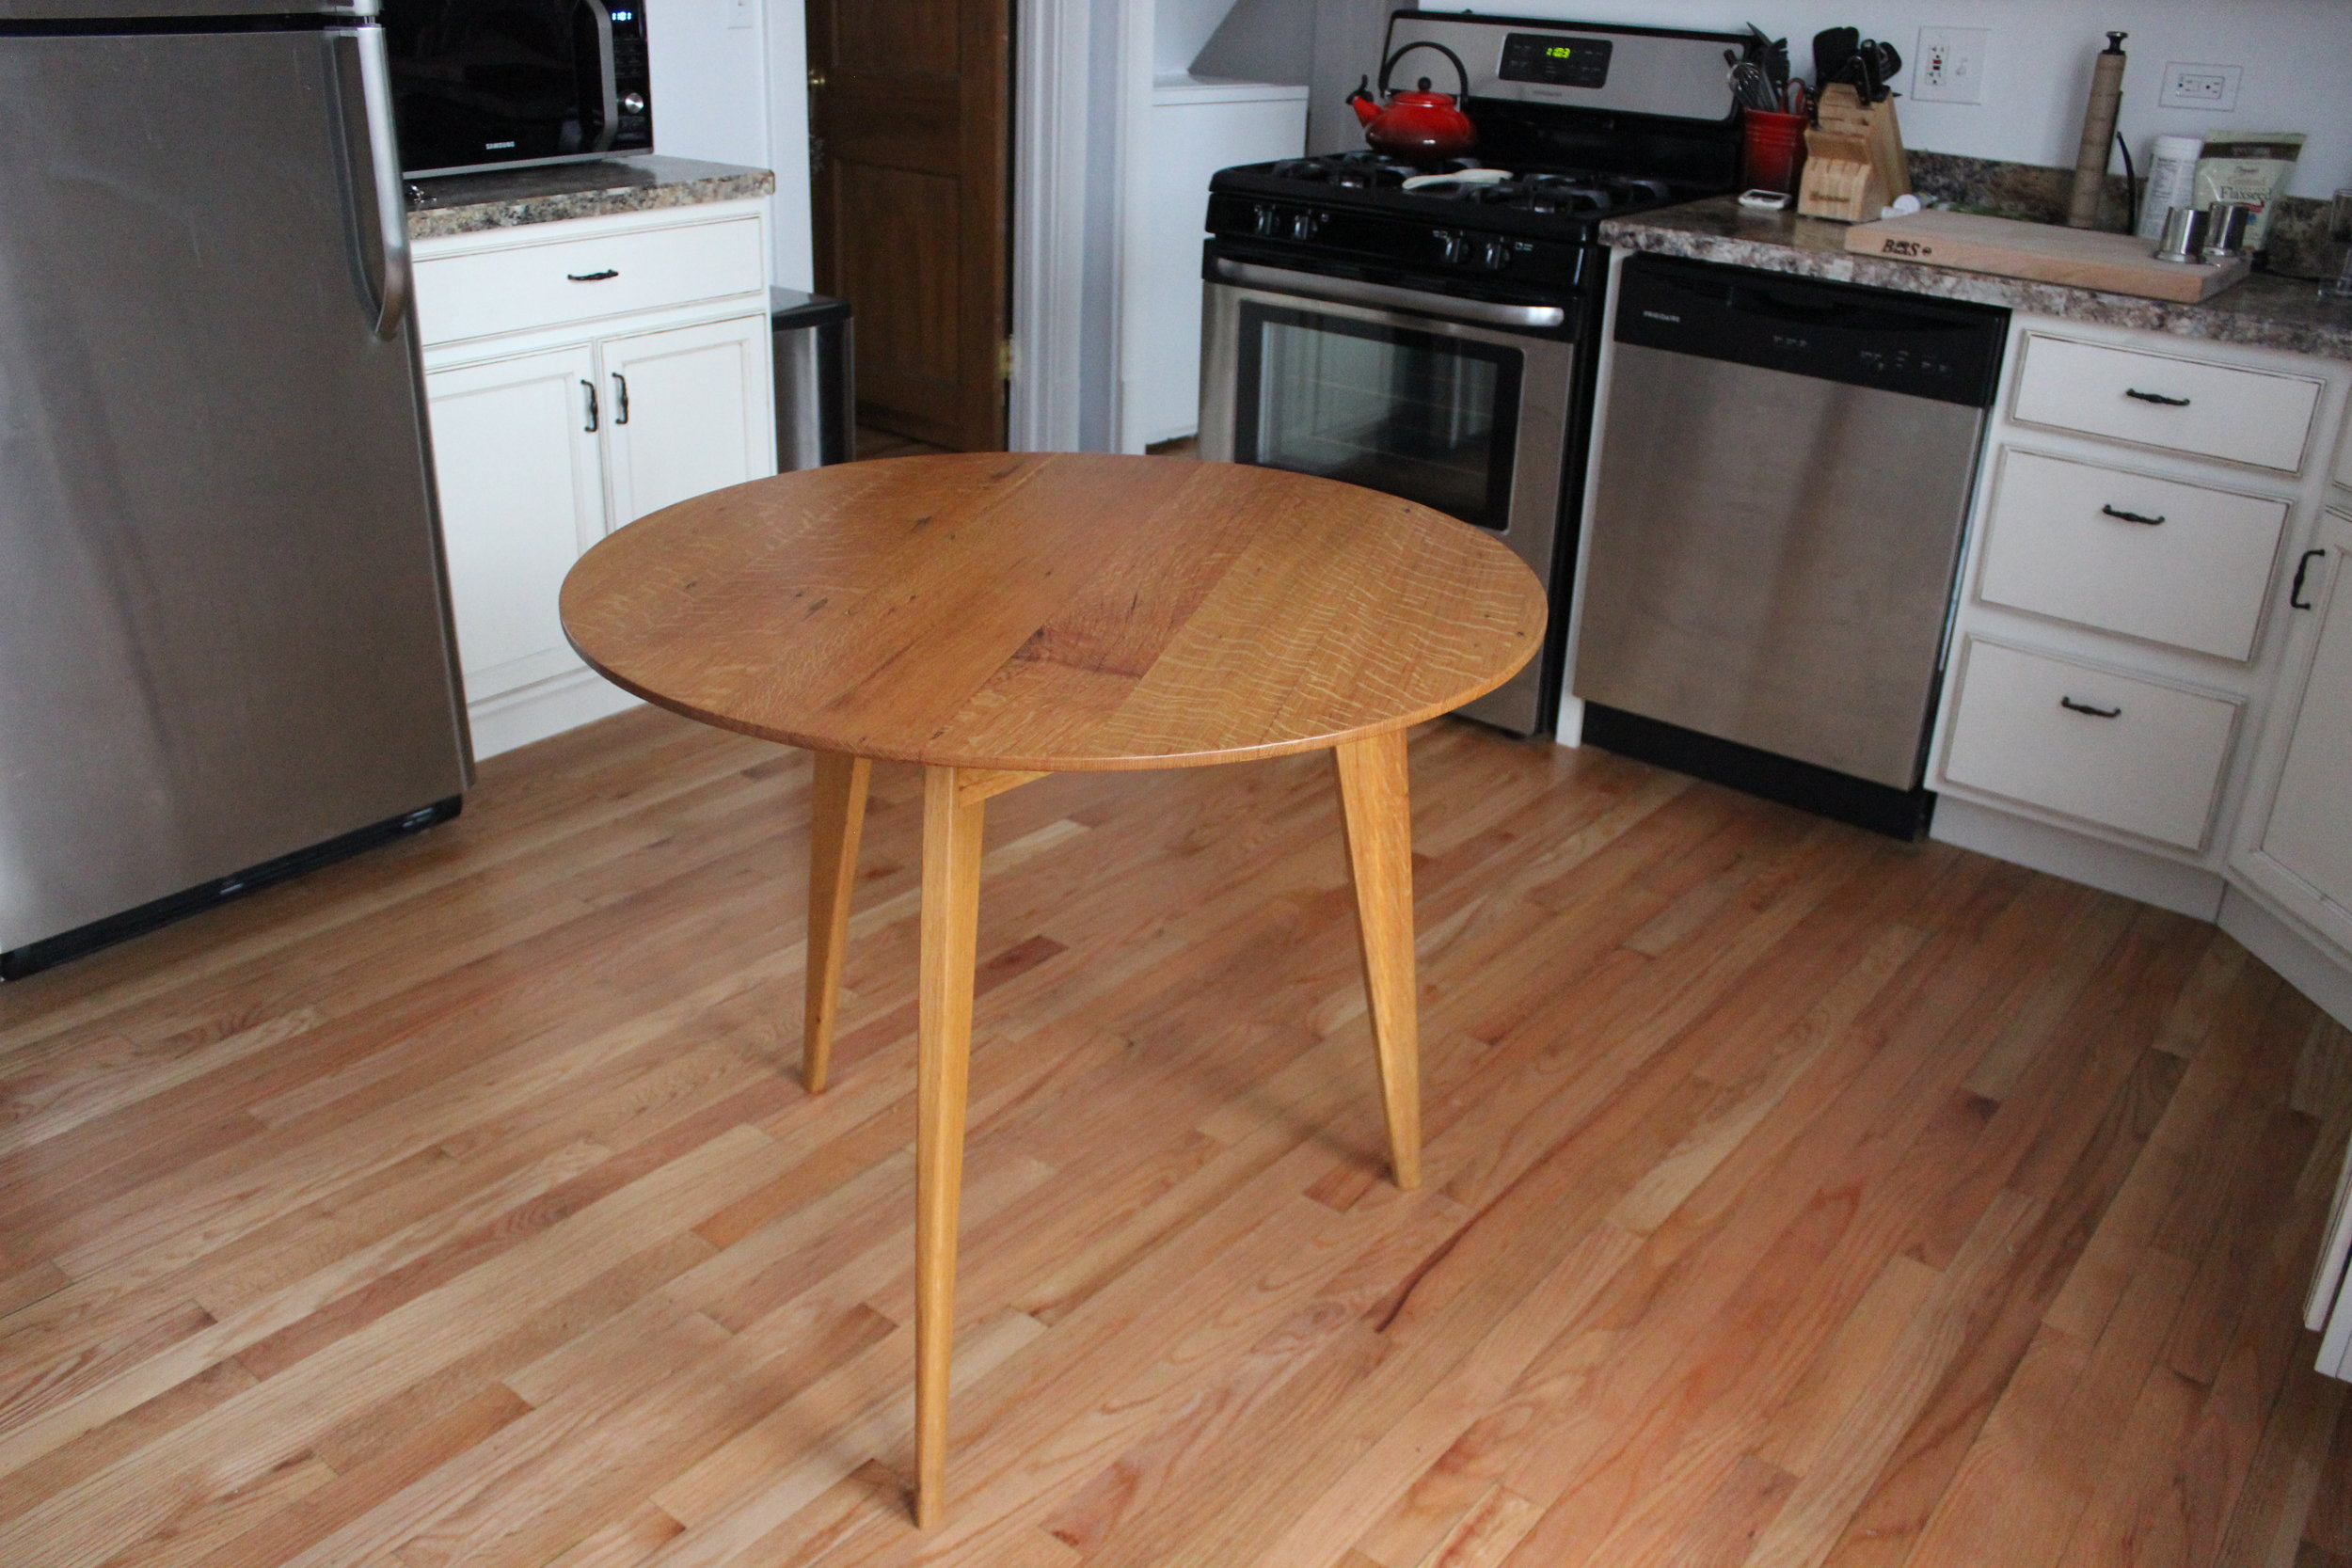 Custom designed 3 legged round kitchen table made from reclaimed white oak.